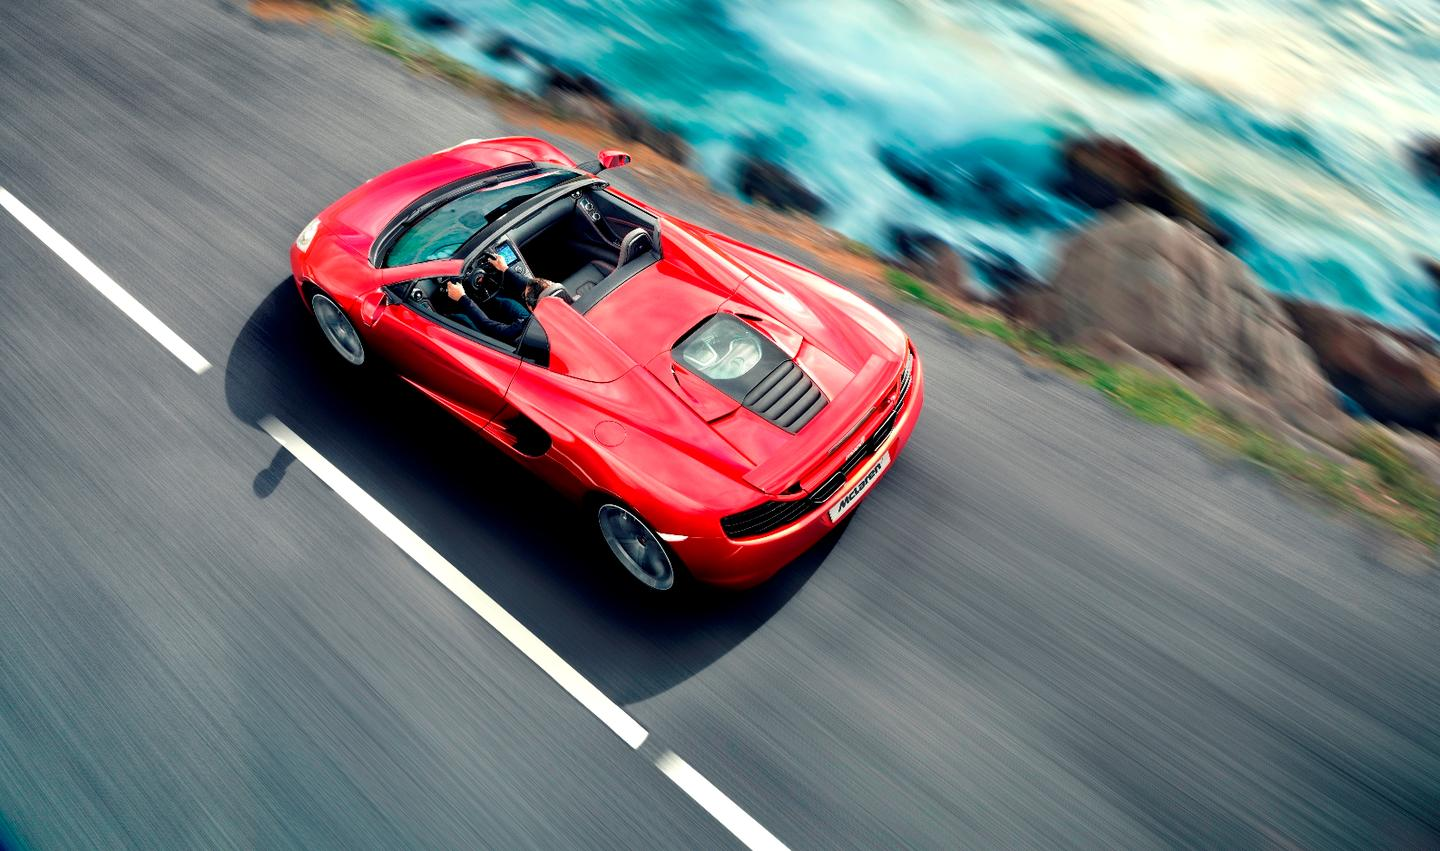 The McLaren 12C Spider boasts the same 24.2 EU mpg (11.7 liters/100 km) fuel efficiency figures as the 12C